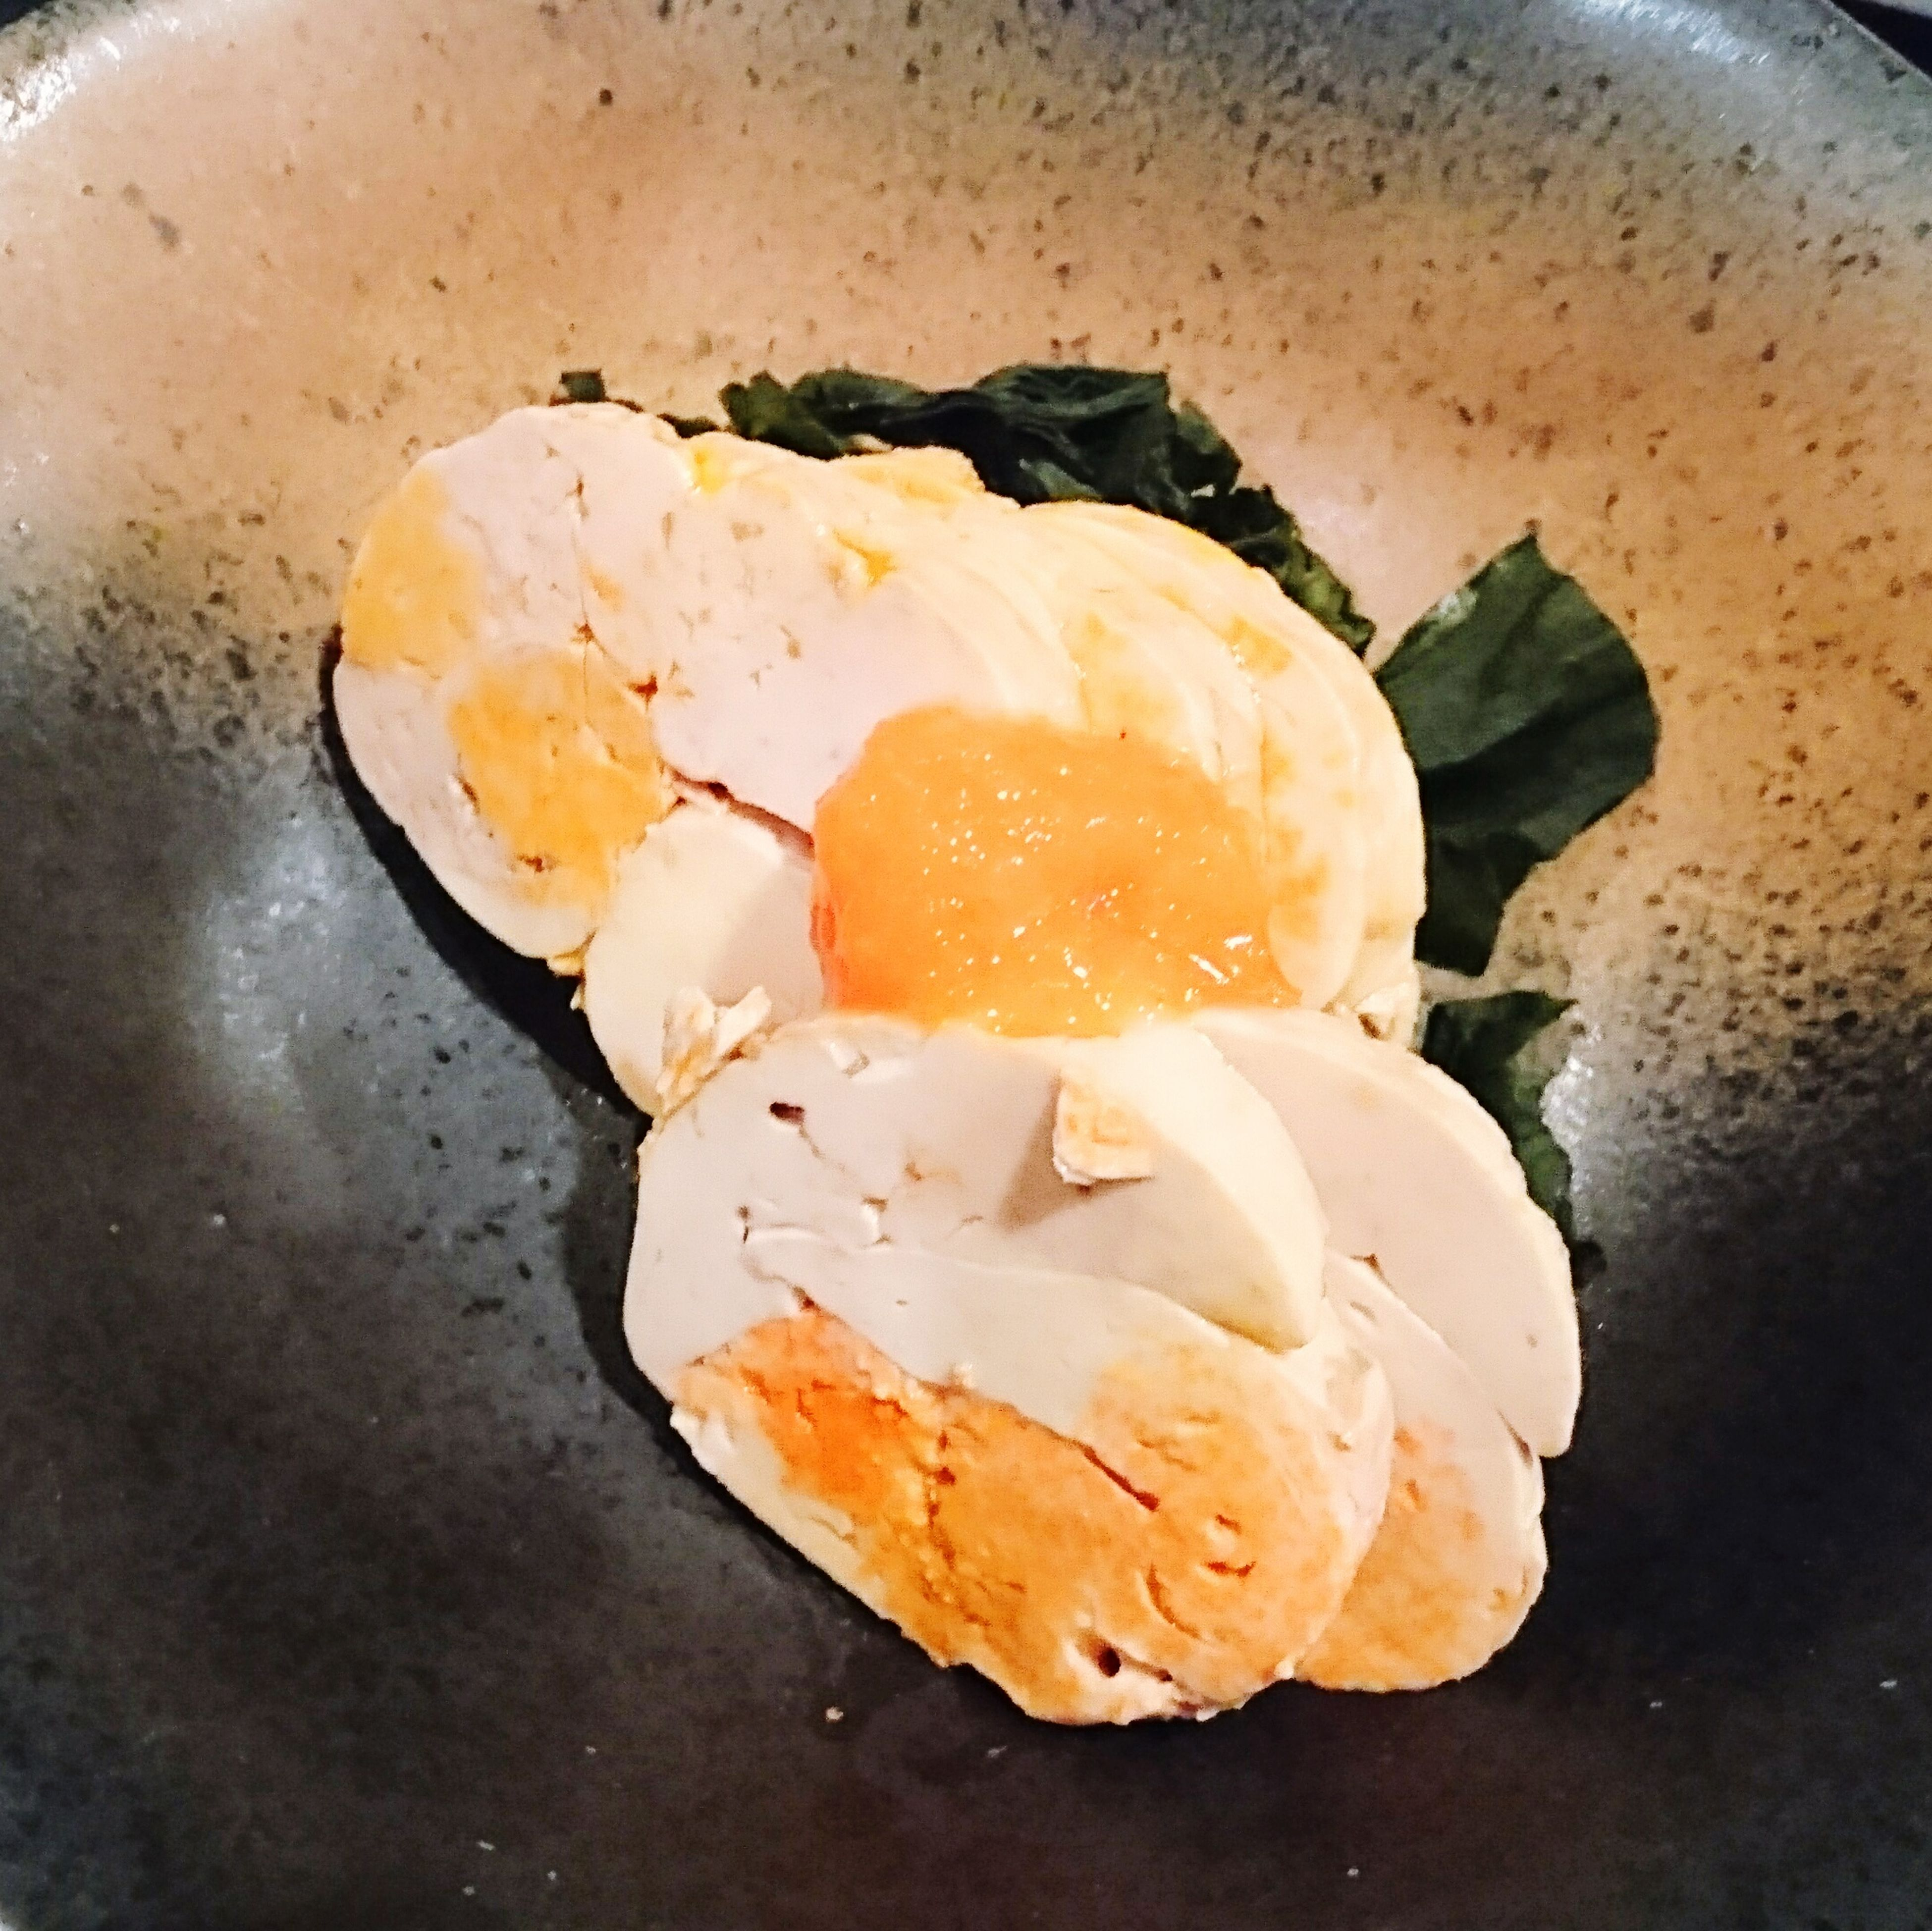 egg yolk, food and drink, food, close-up, no people, indoors, freshness, ready-to-eat, day